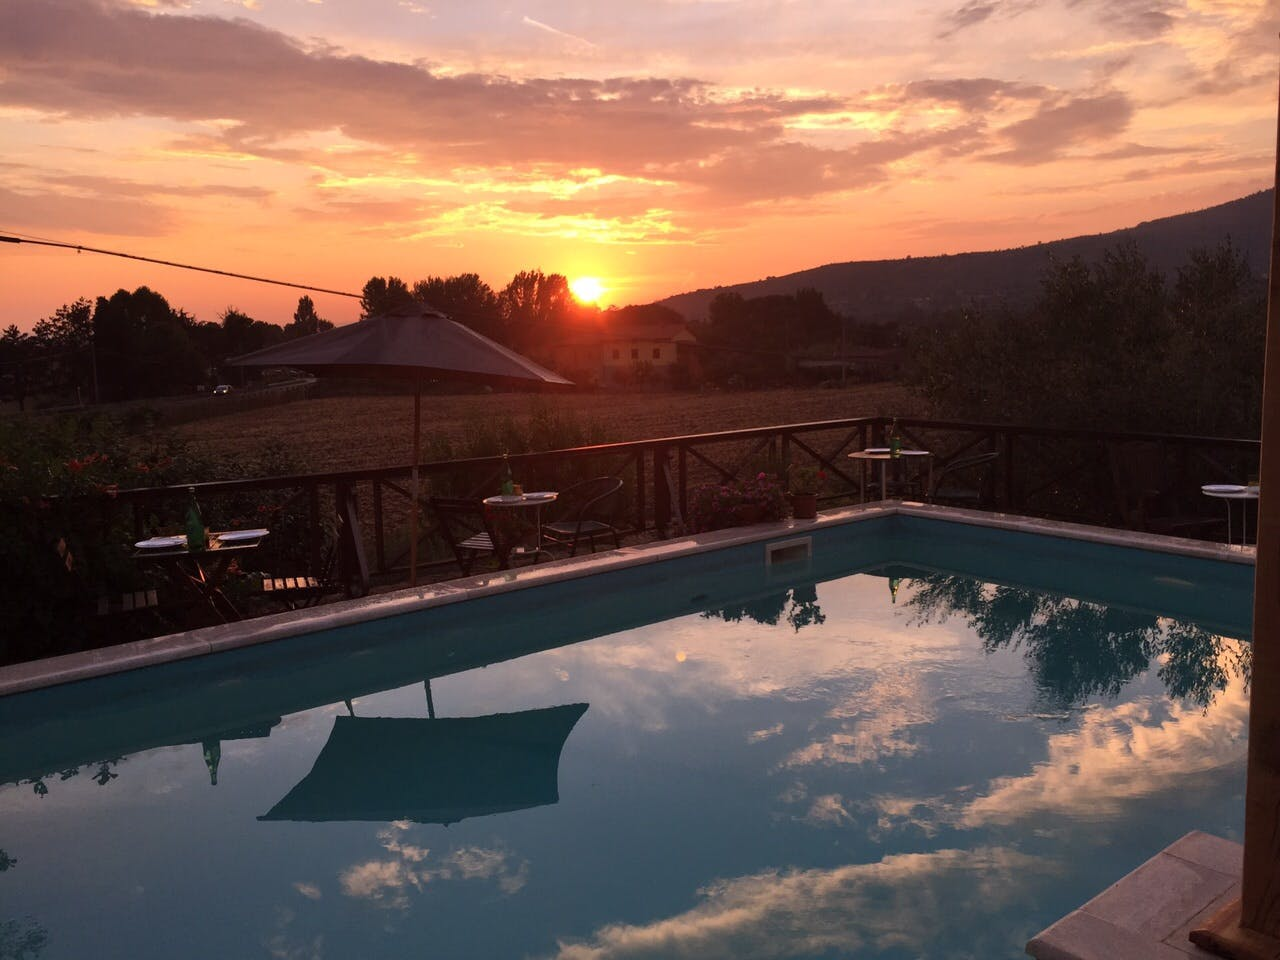 sunset in the swimming pool at il sole del sodo